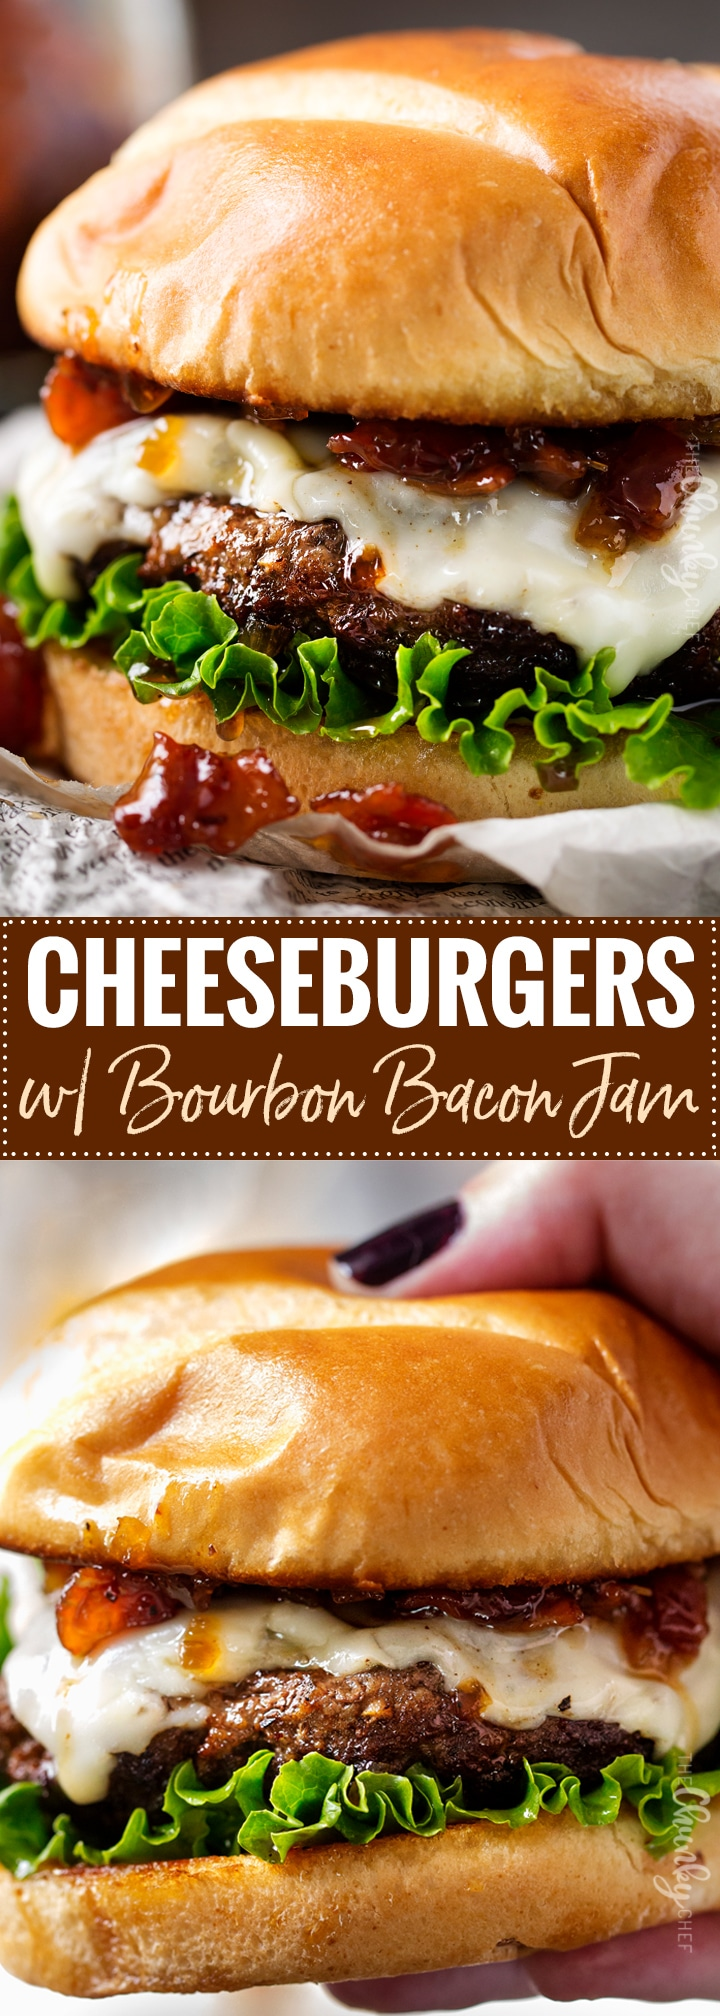 Cheeseburgers with Bourbon Bacon Jam   The only thing better than a juicy cheeseburger on a toasted bun, is a juicy cheeseburger topped with homemade bourbon bacon jam! Regular condiments are a thing of the past!   http://thechunkychef.com